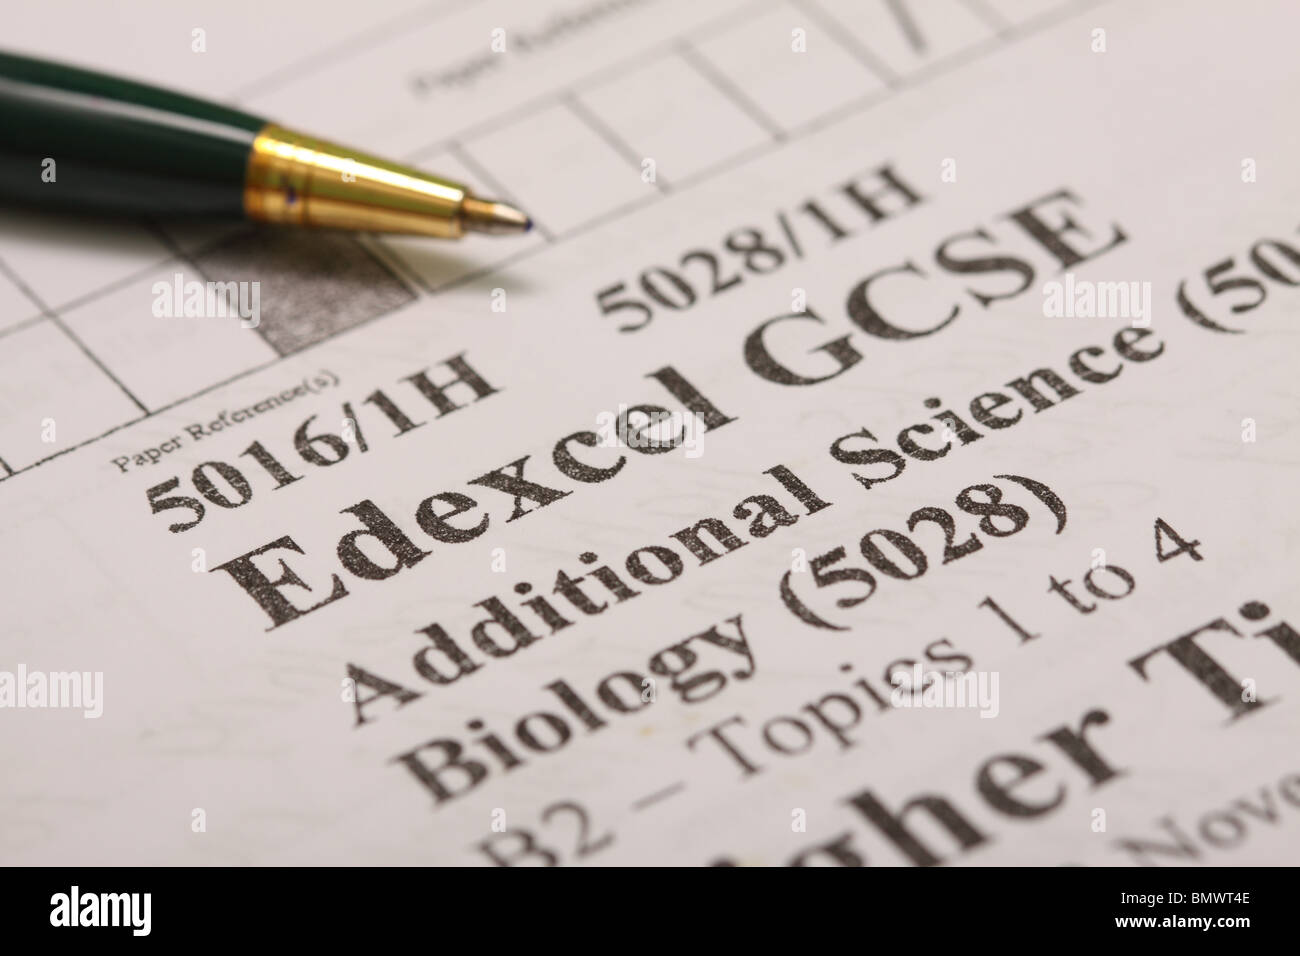 Biology coursework help gcse